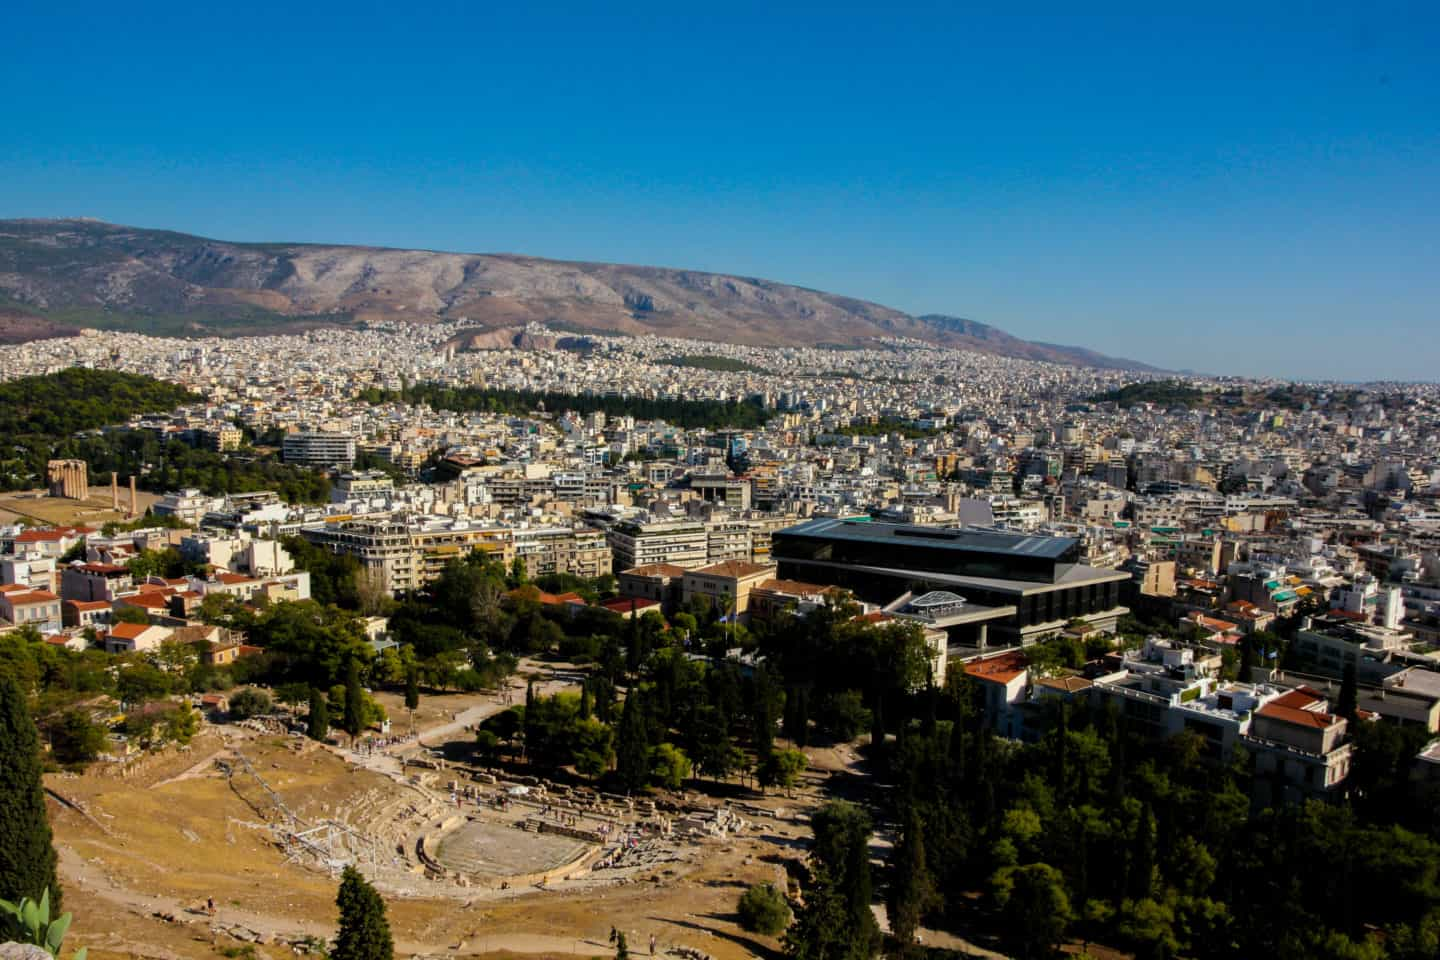 The Theater of Dionysus below the Acropolis